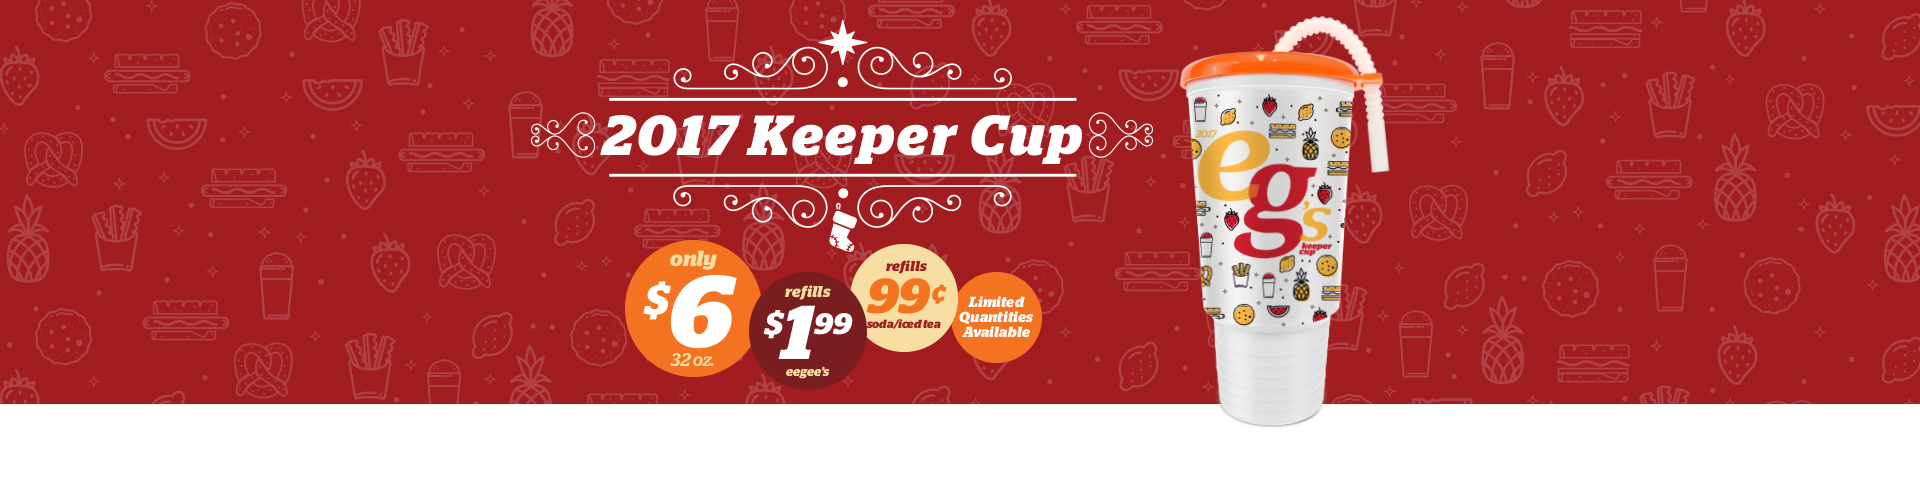 keeper-cup_slider